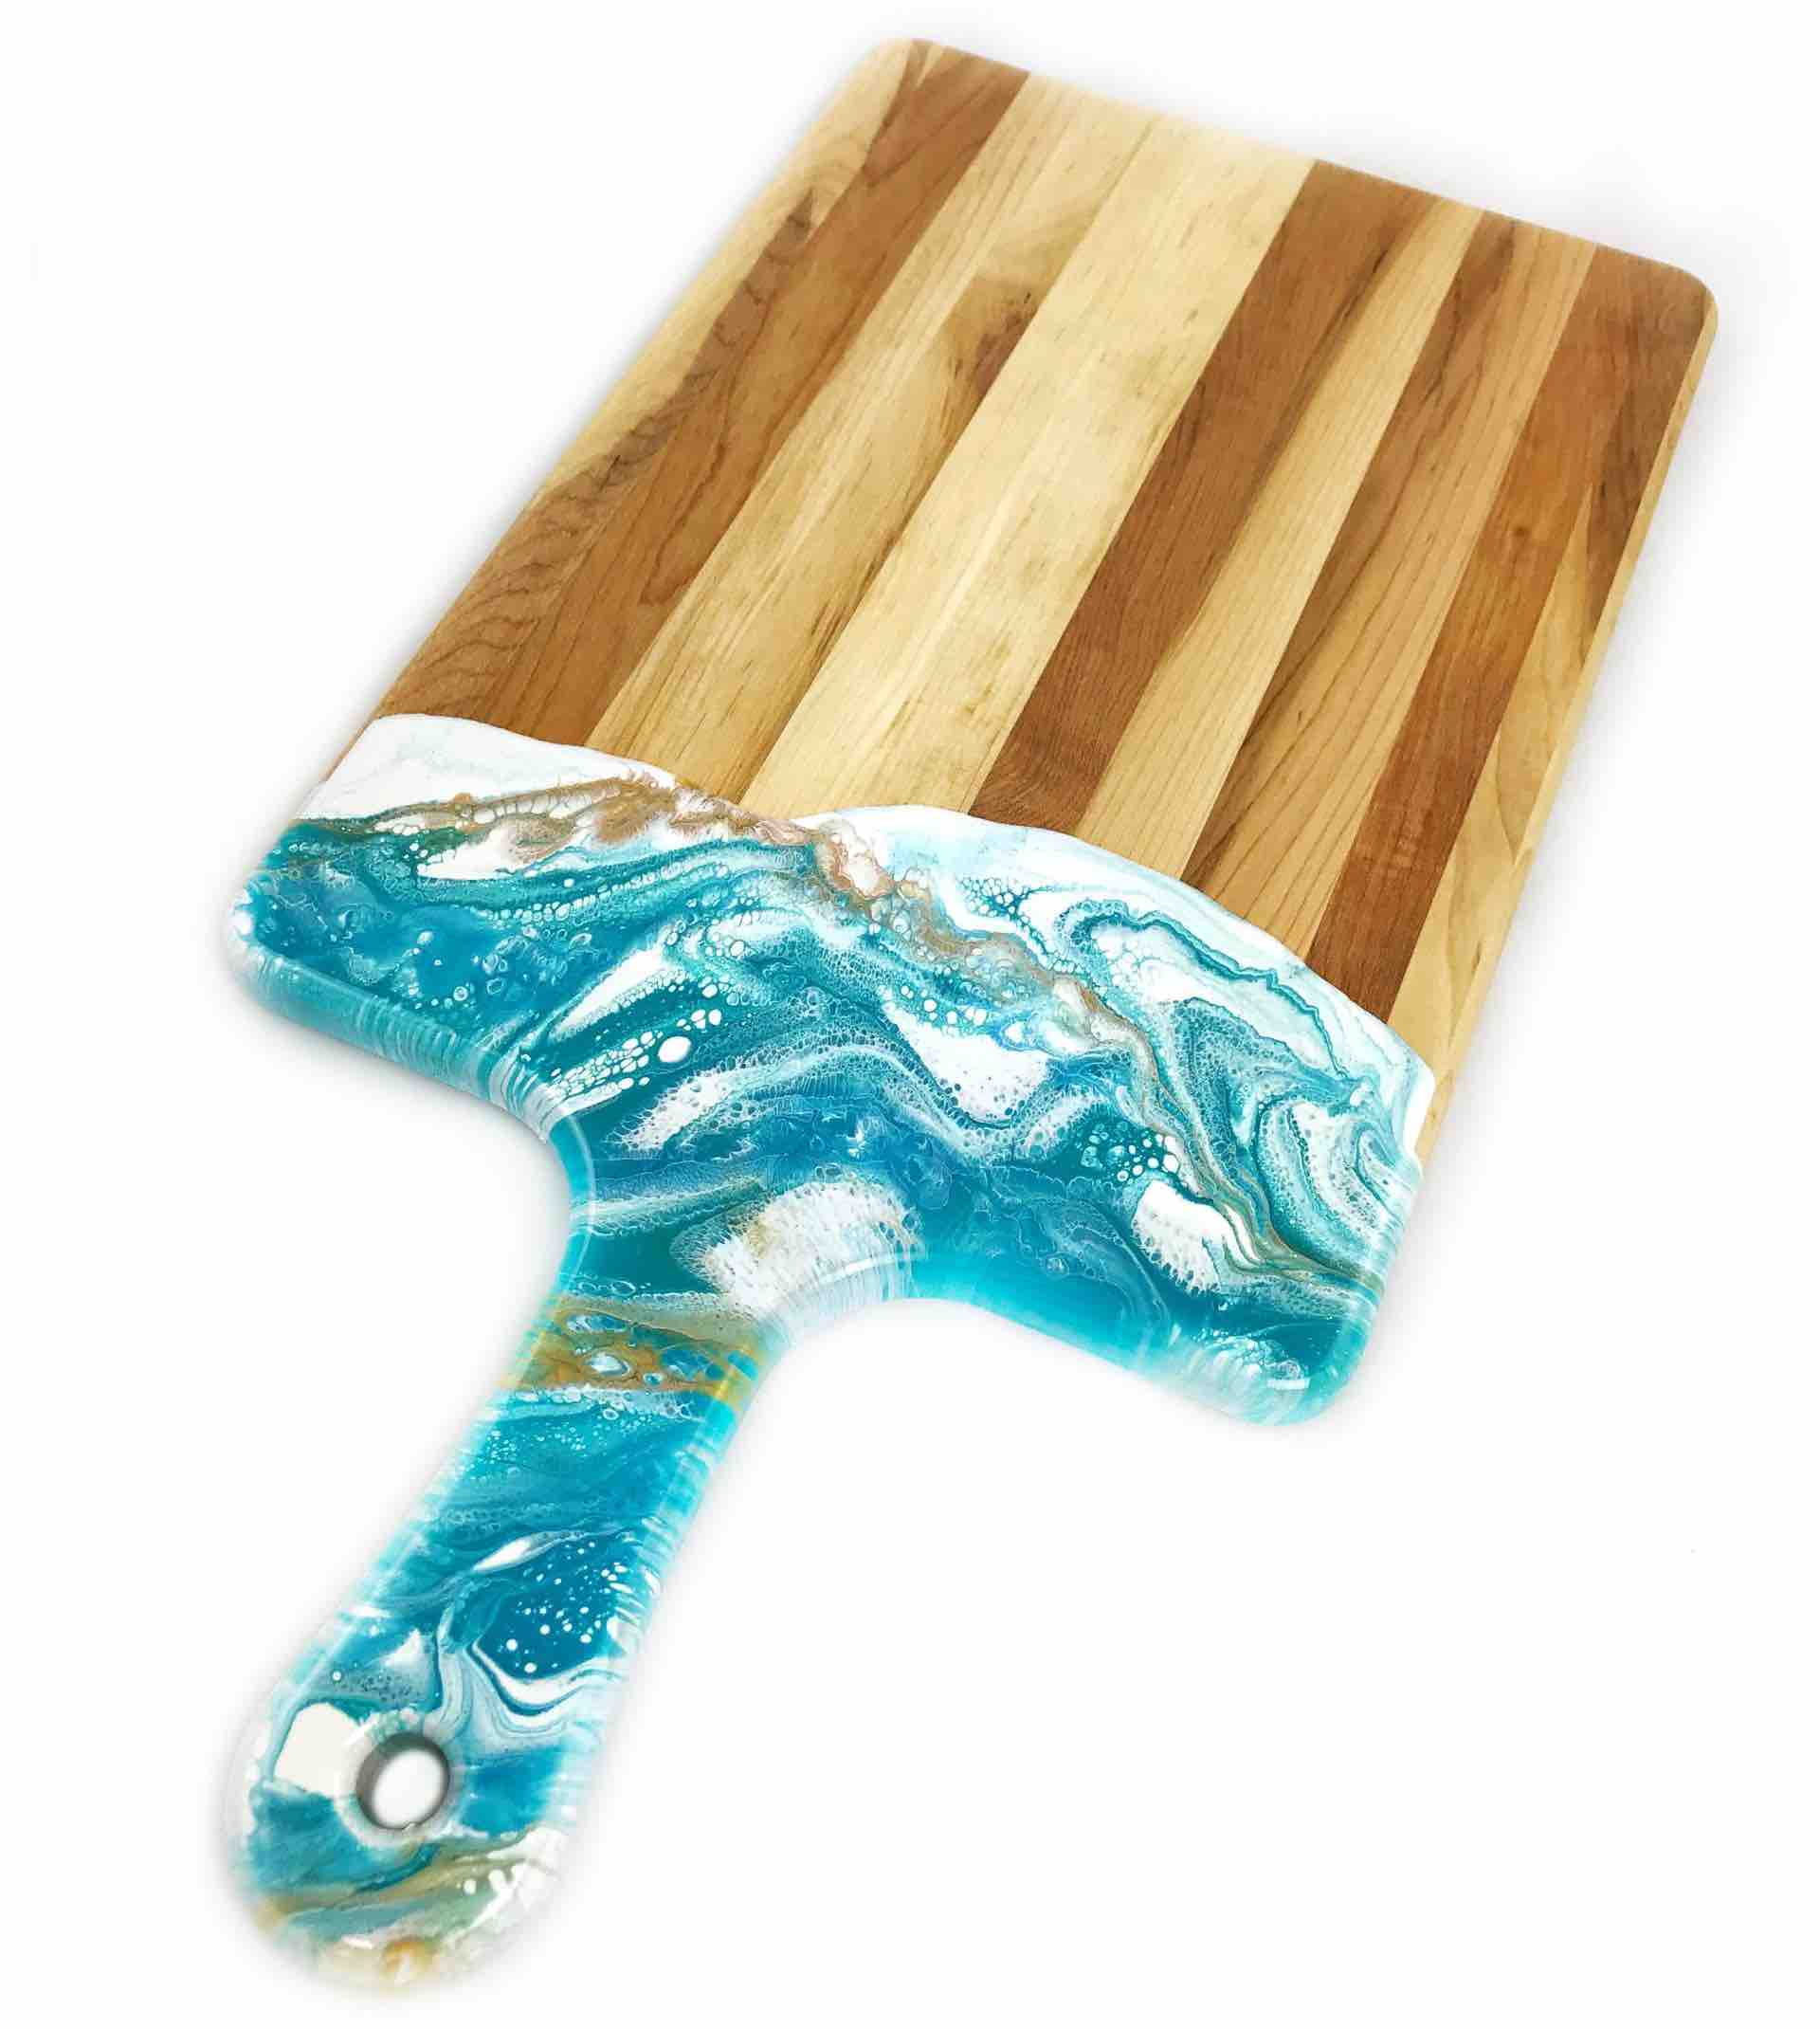 Lynn & Liana Cheeseboard with Dipped Handle | 10x20"